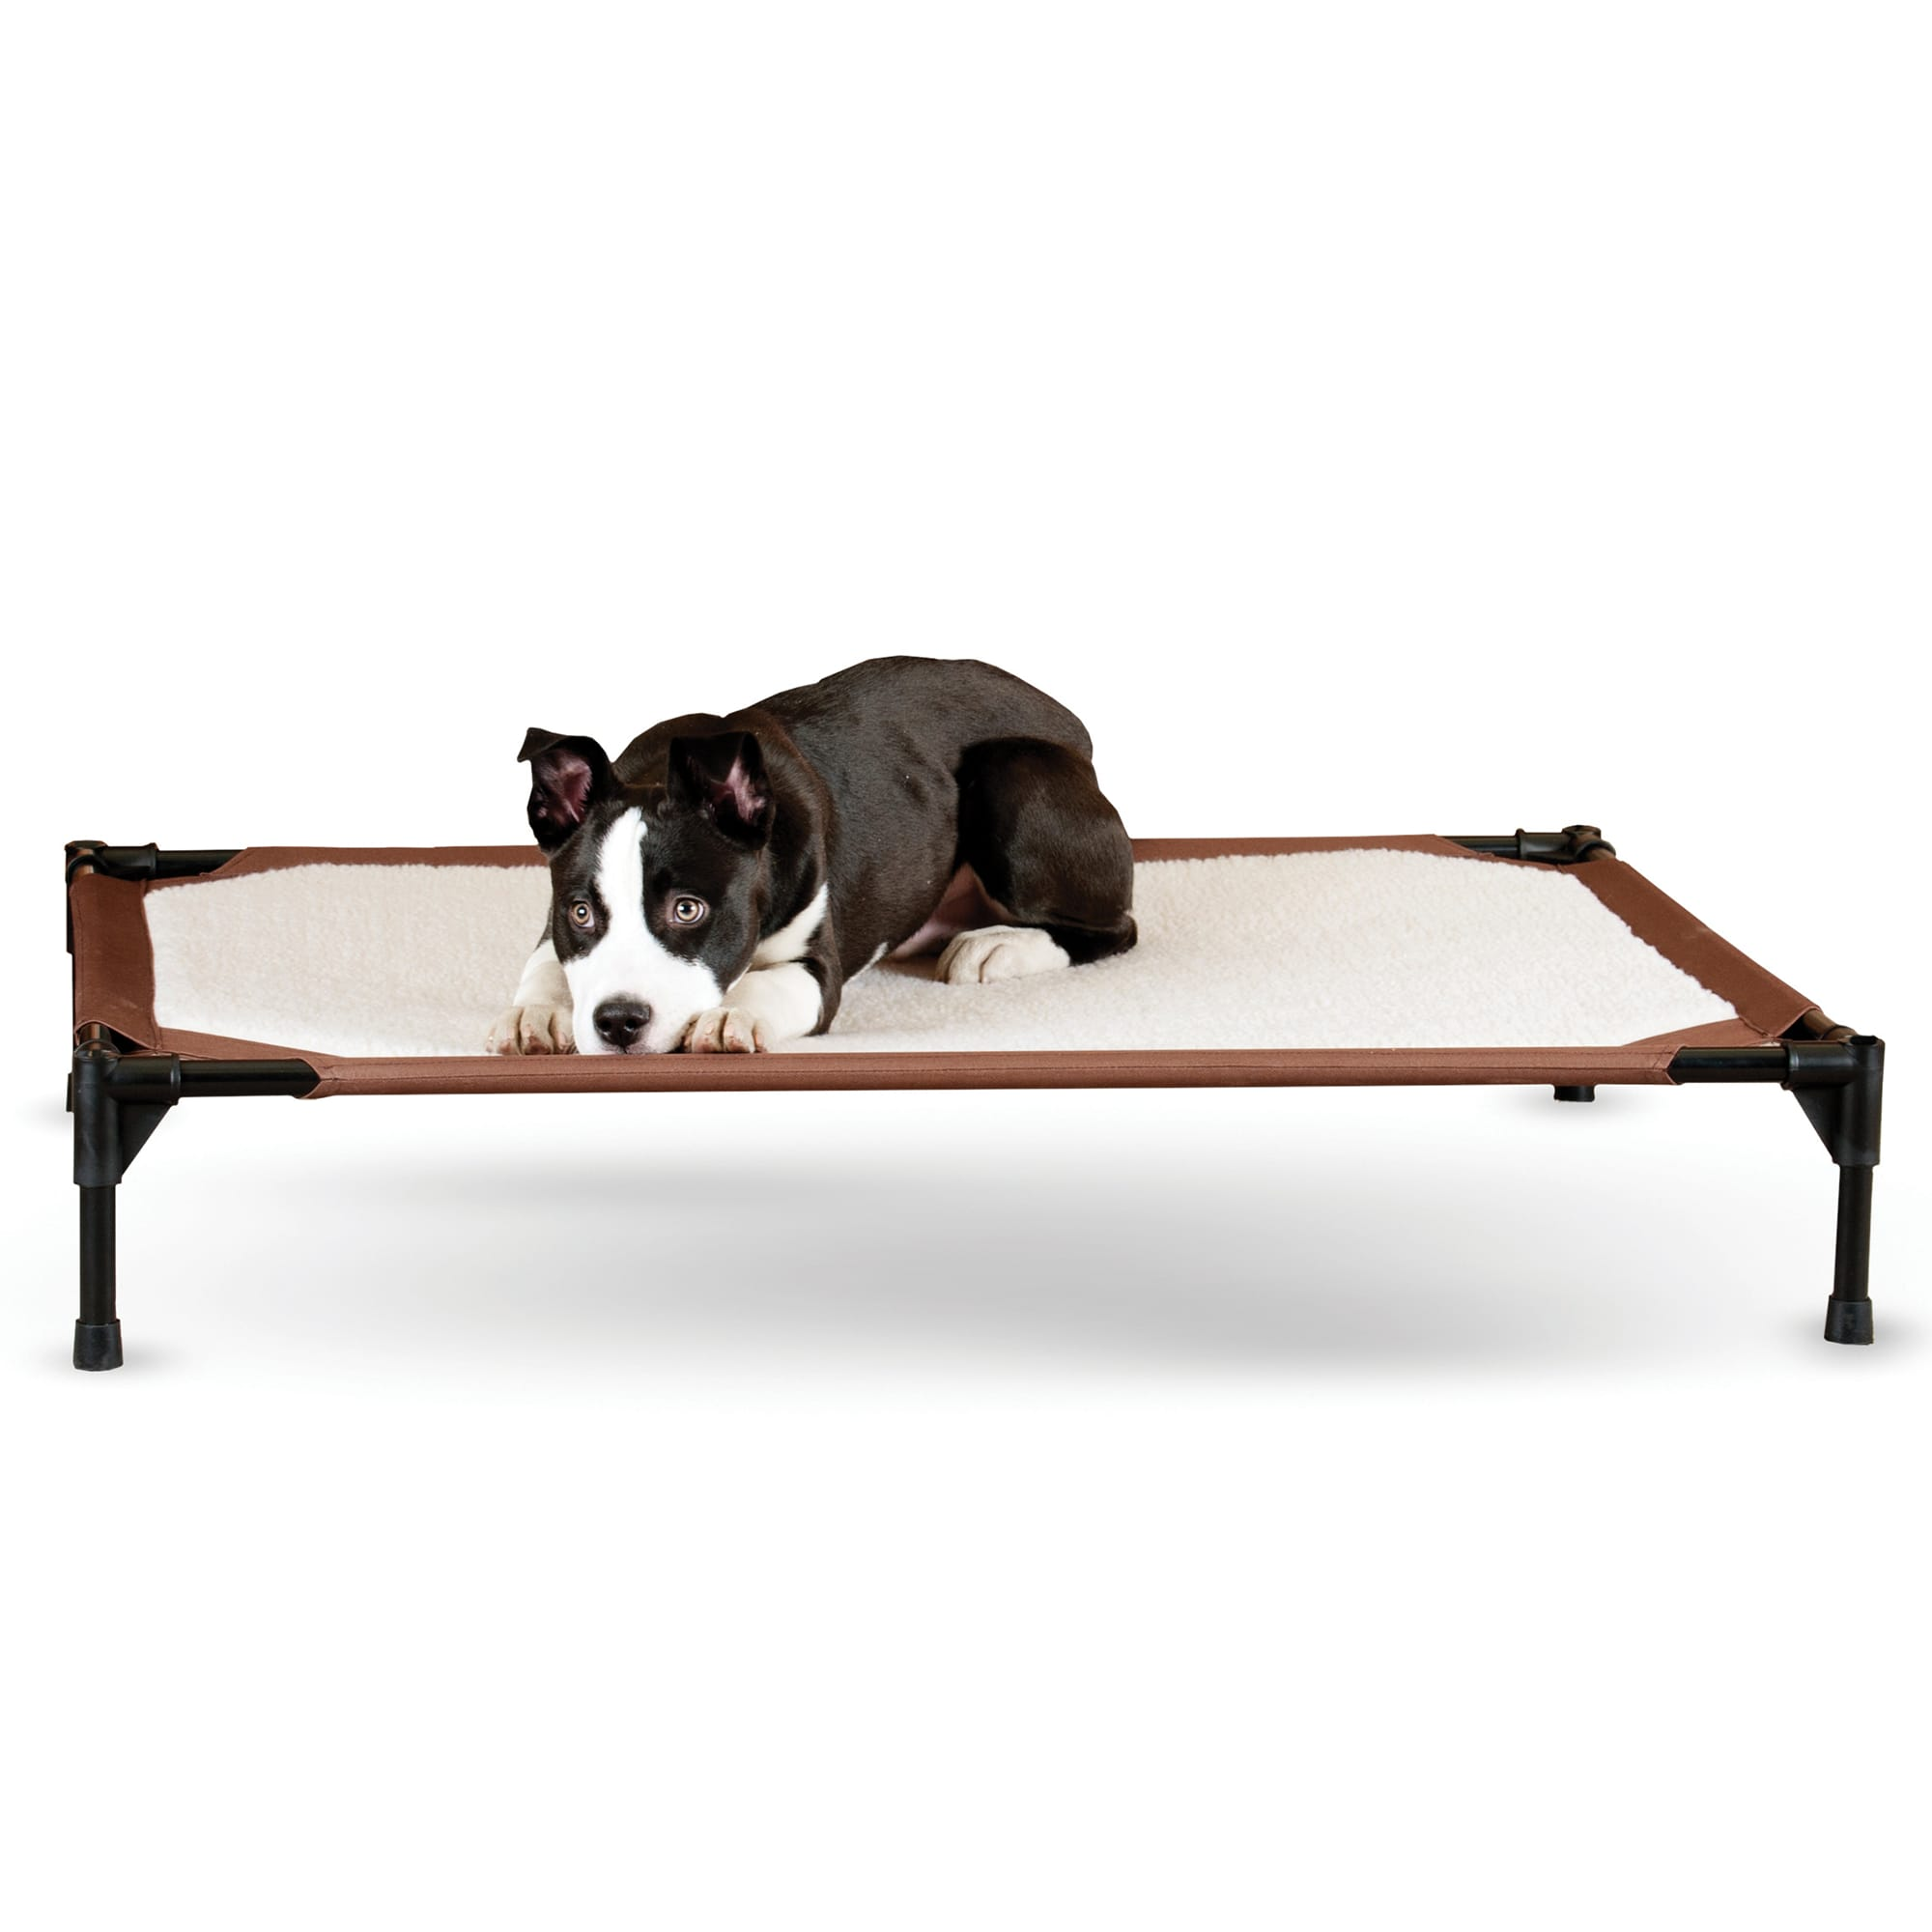 Our super successful K&H Original Pet Cot is now available in a fleecy, comfortable, self warming model. Strong enough to hold over 150 lbs.